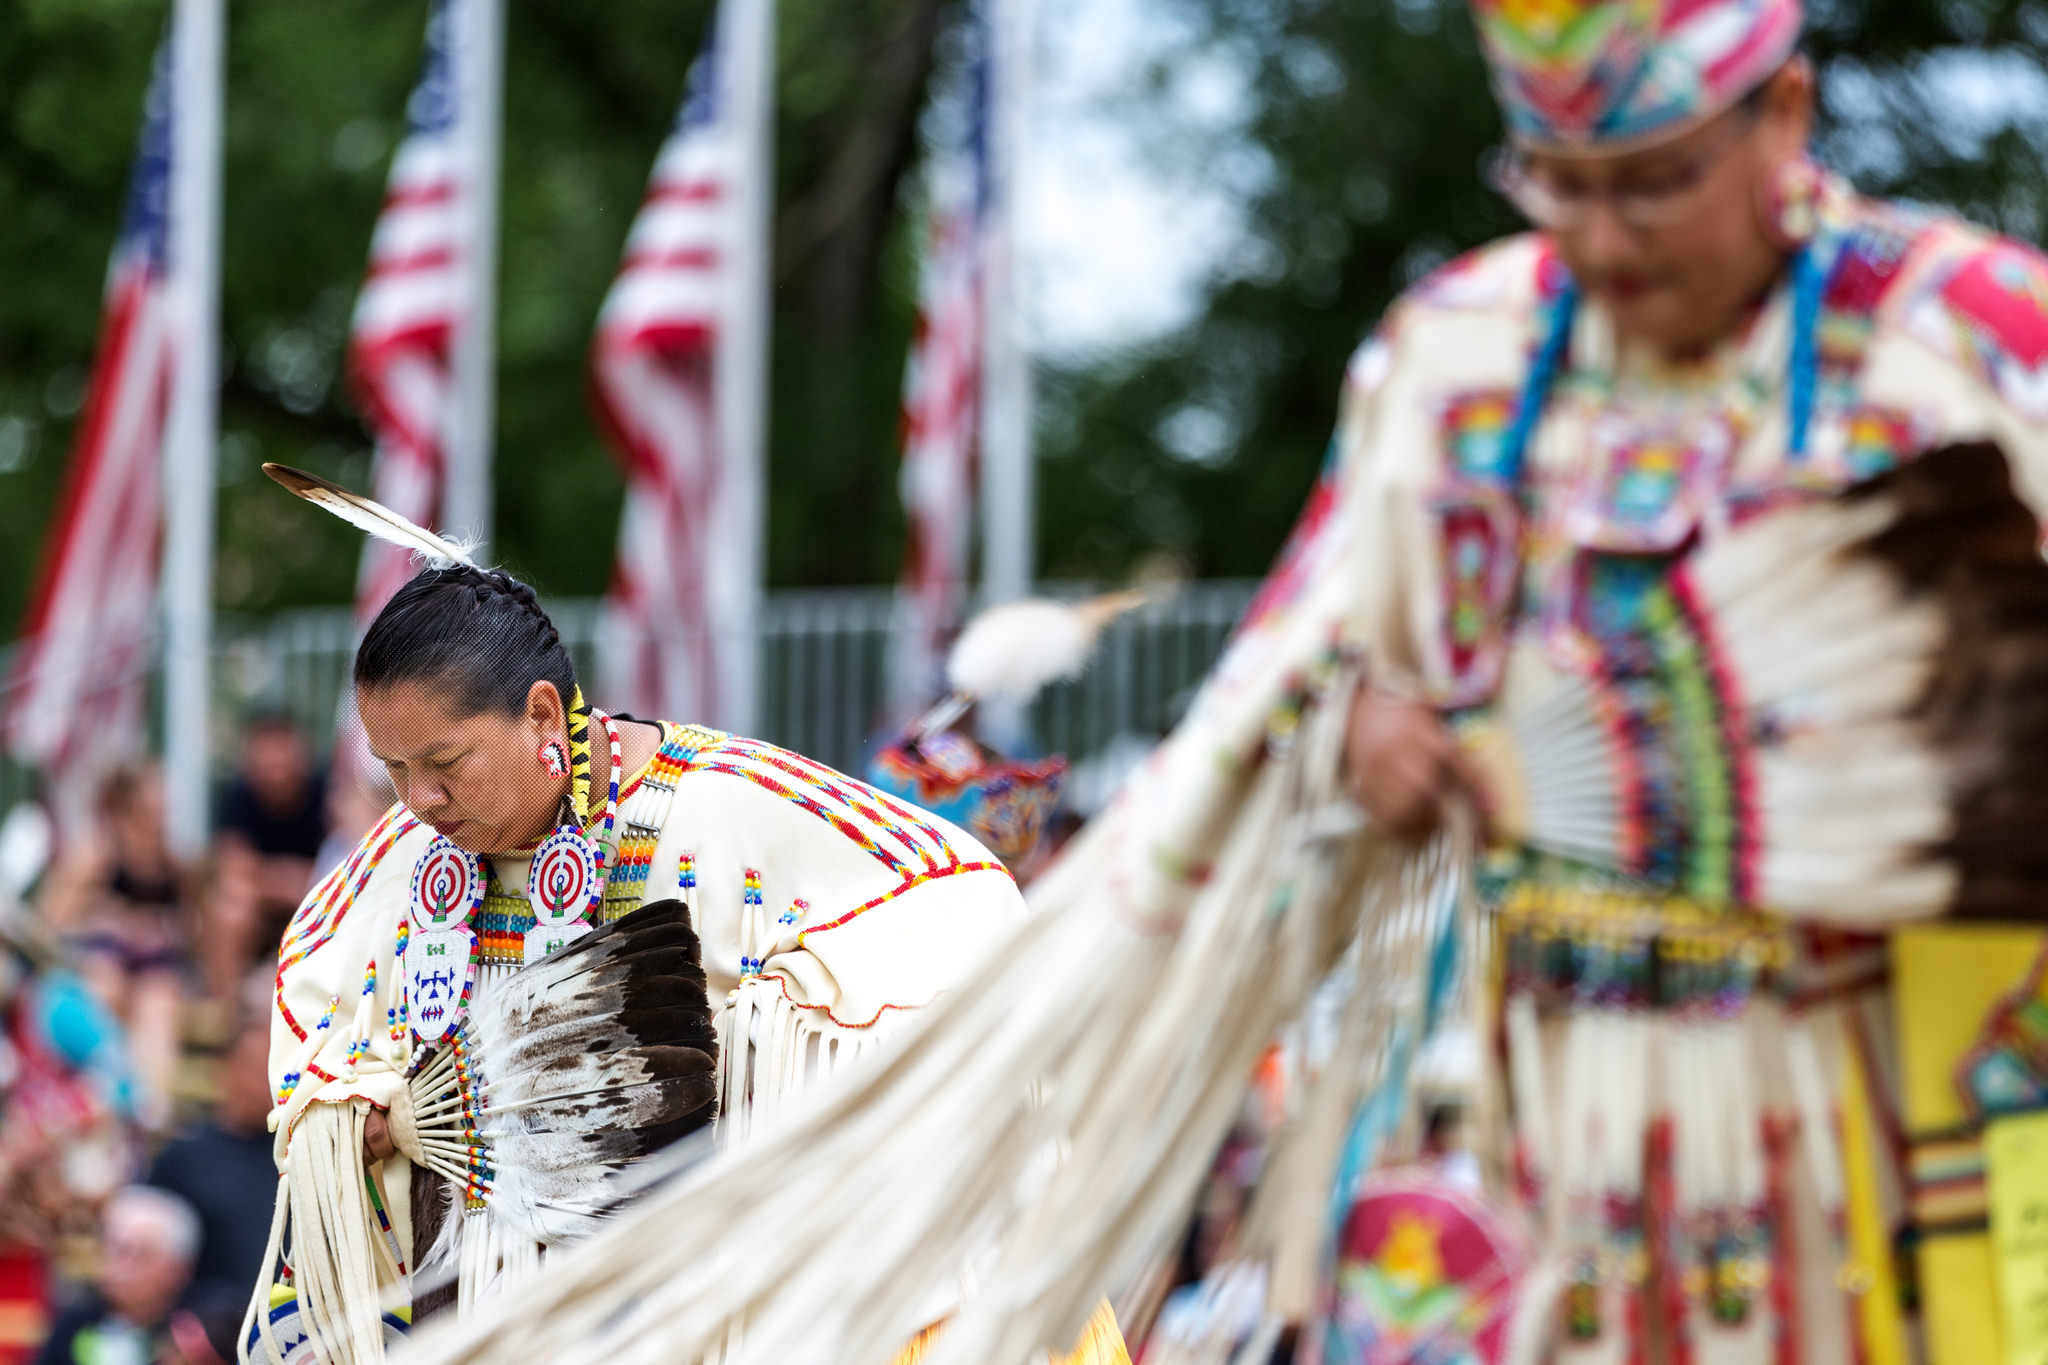 Prairie Island Indian Community responds to 'racial stereotypes' in newspaper